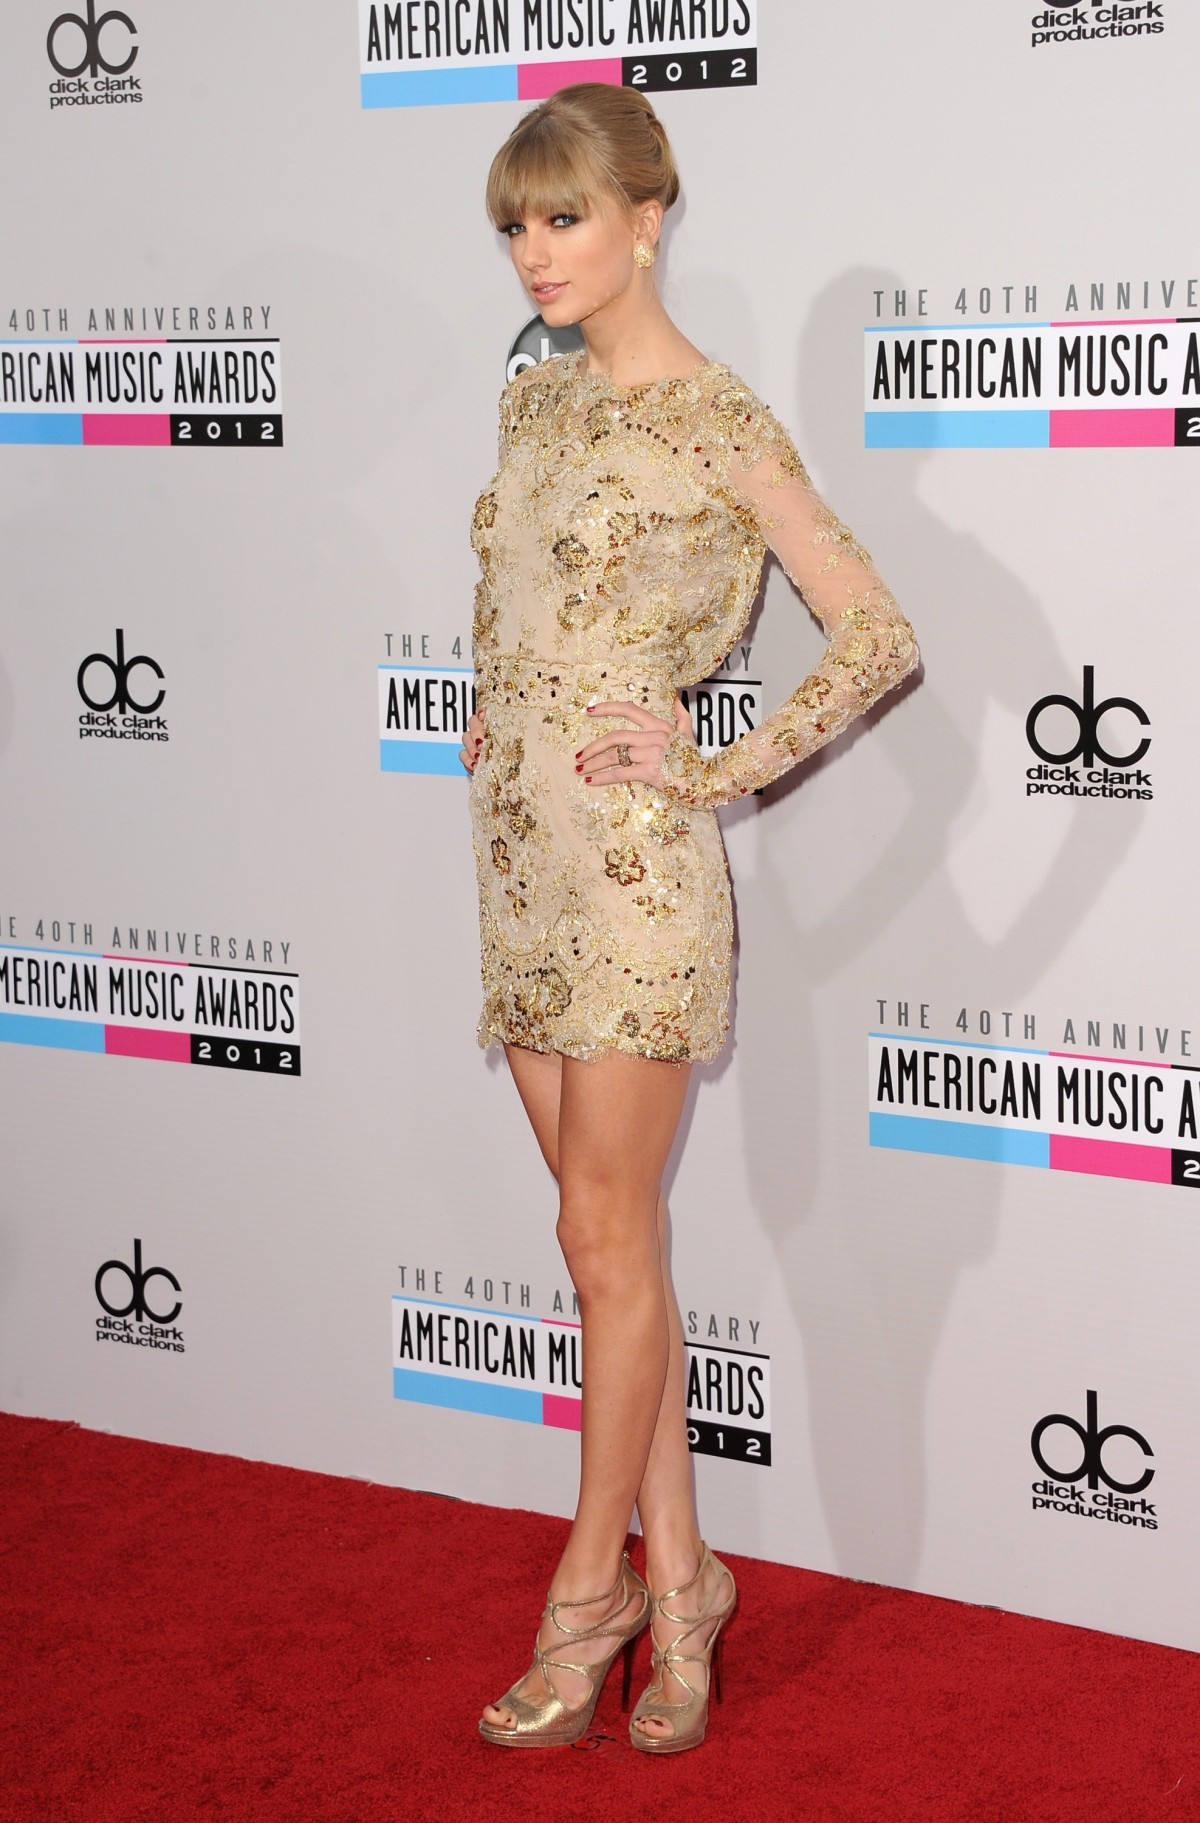 The 40th American Music Awards – Arrivals